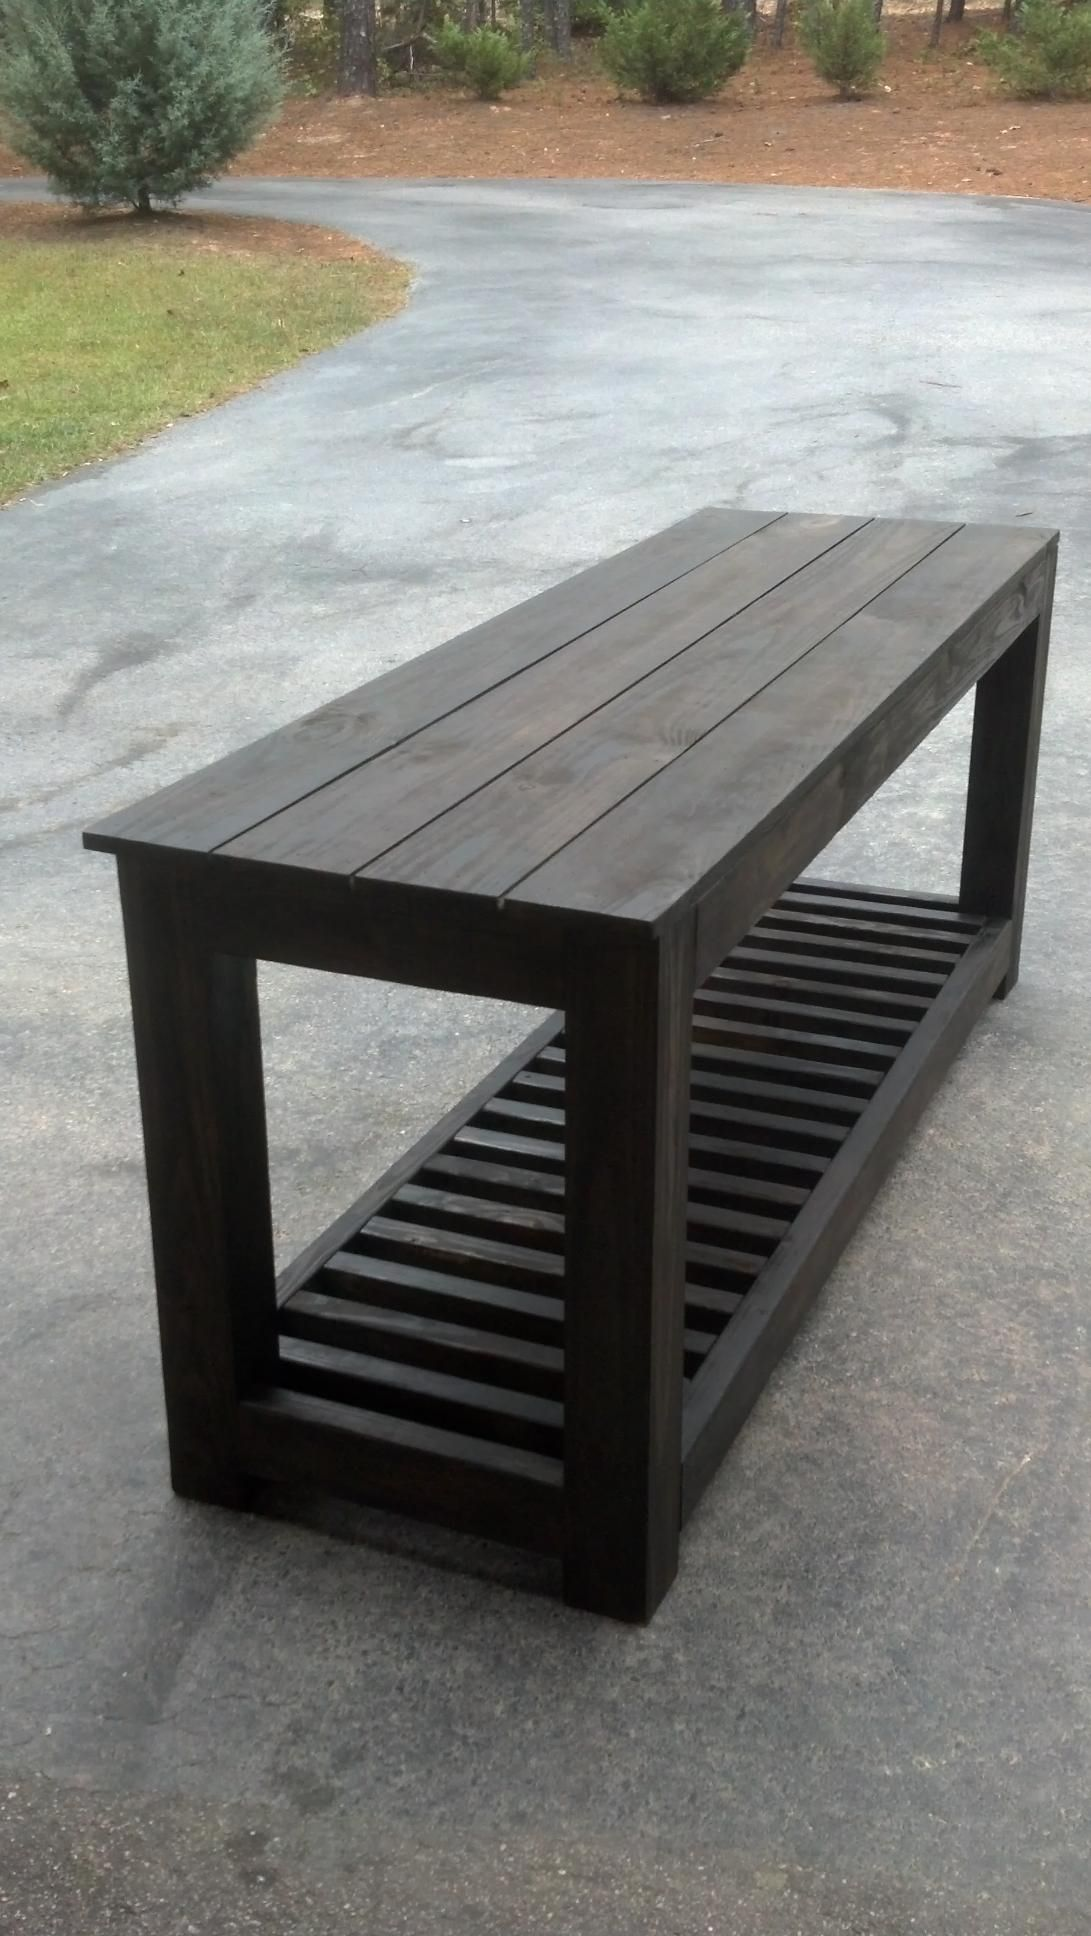 Custom built kitchen island/outdoor prep table | HayDay's ...